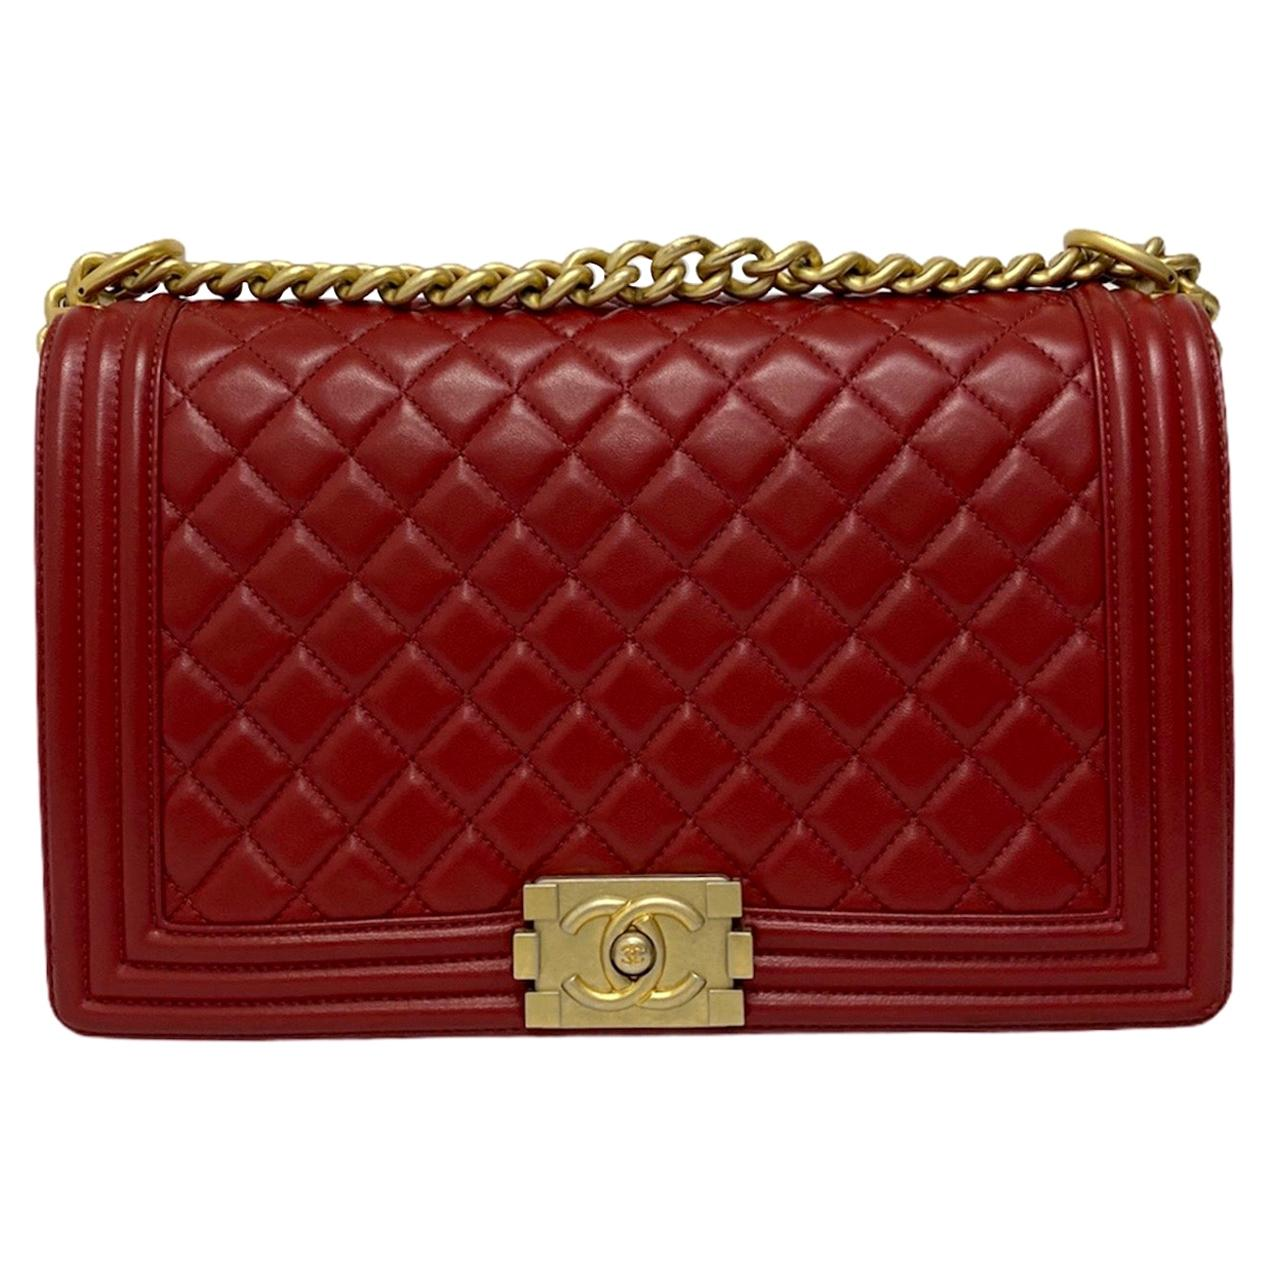 Chanel Red Leather Boy Bag